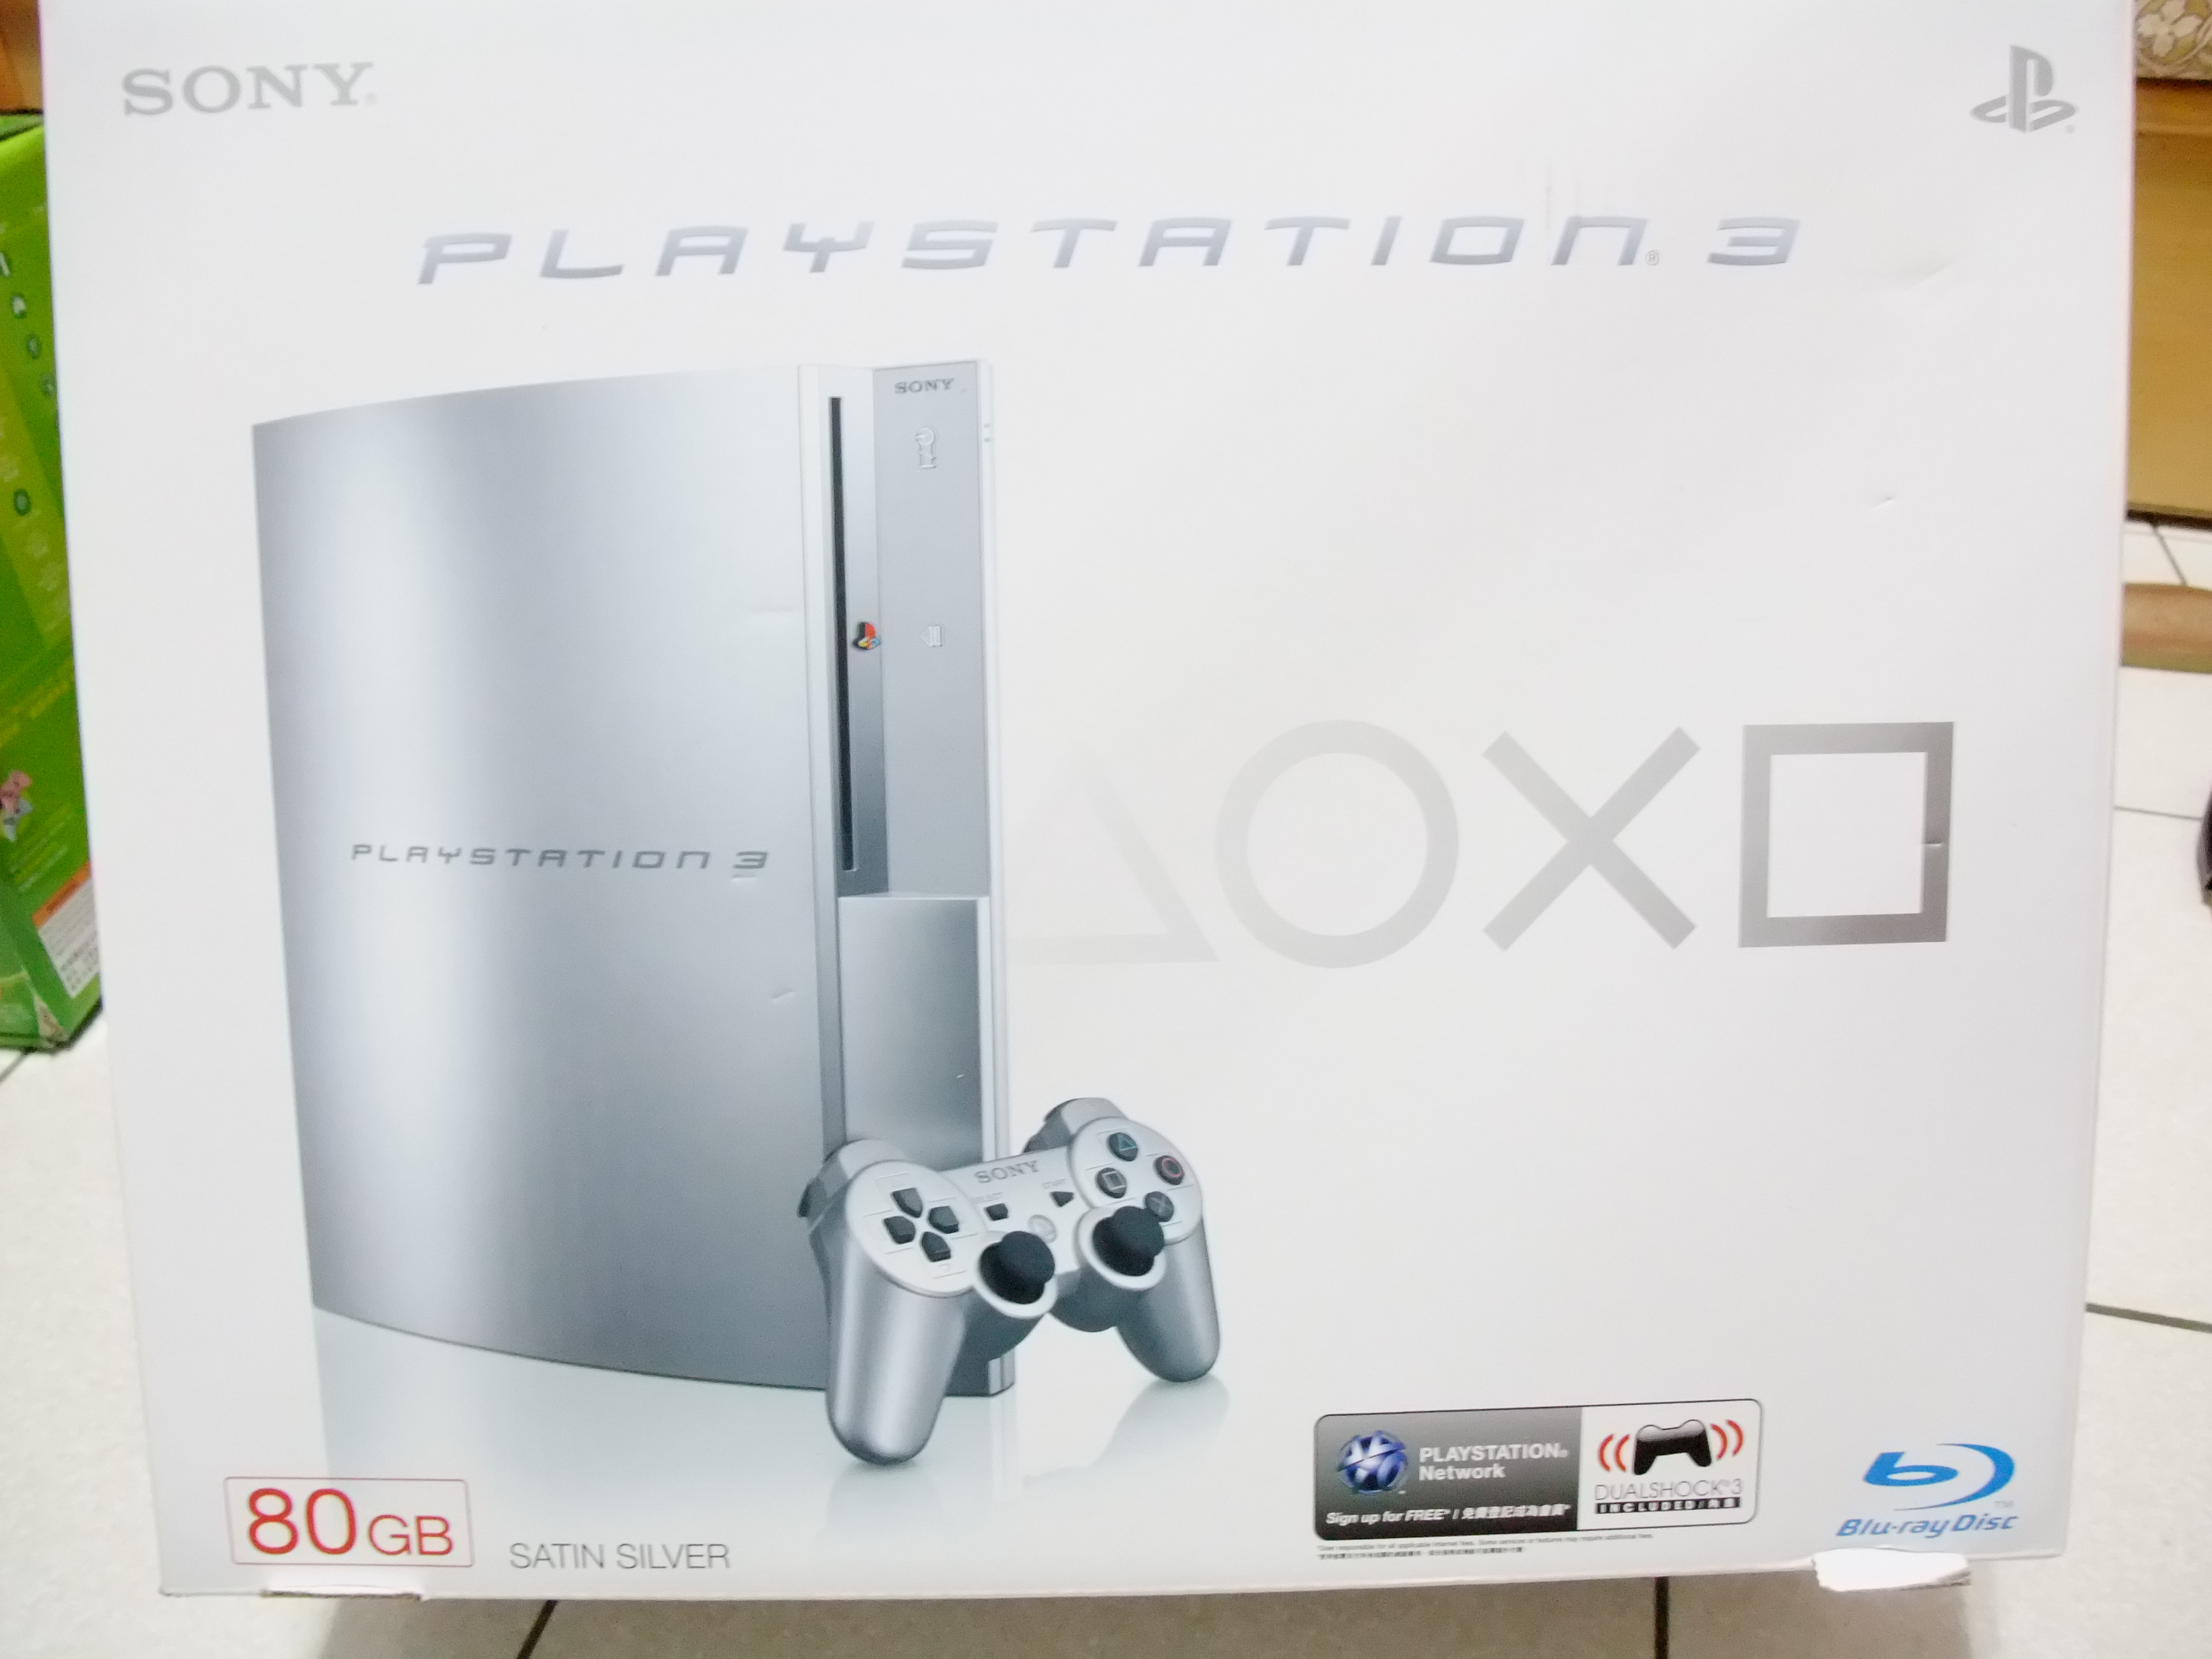 PS3盒子